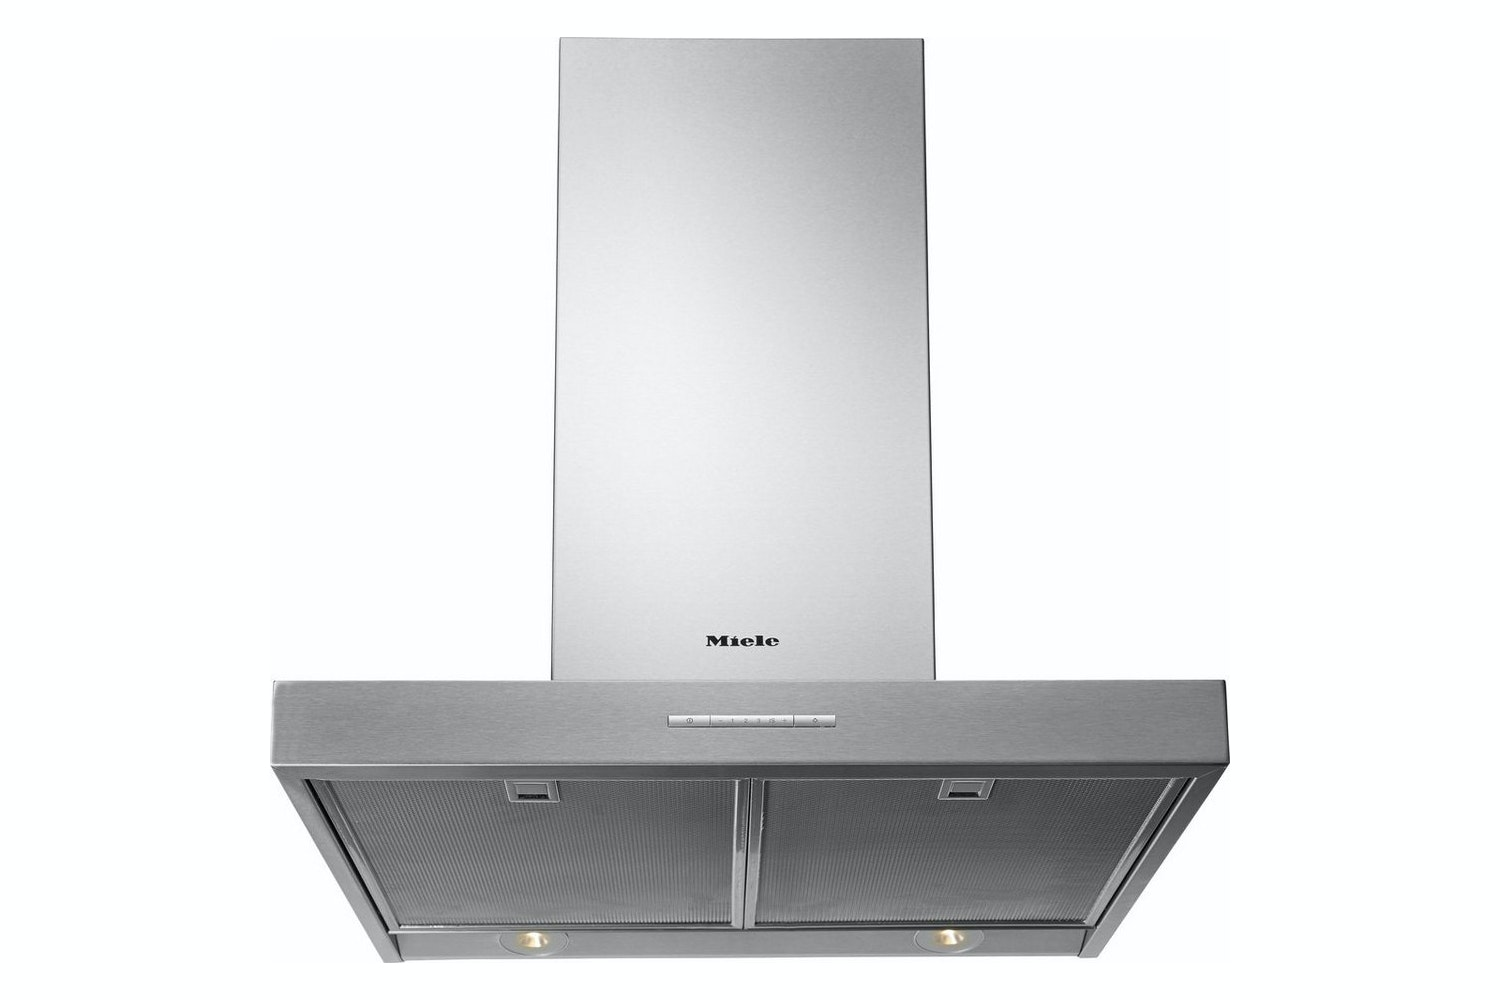 Miele PUR 68 W  Wall mounted cooker hood   with energy-efficient LED lighting and light-touch switches for easy use